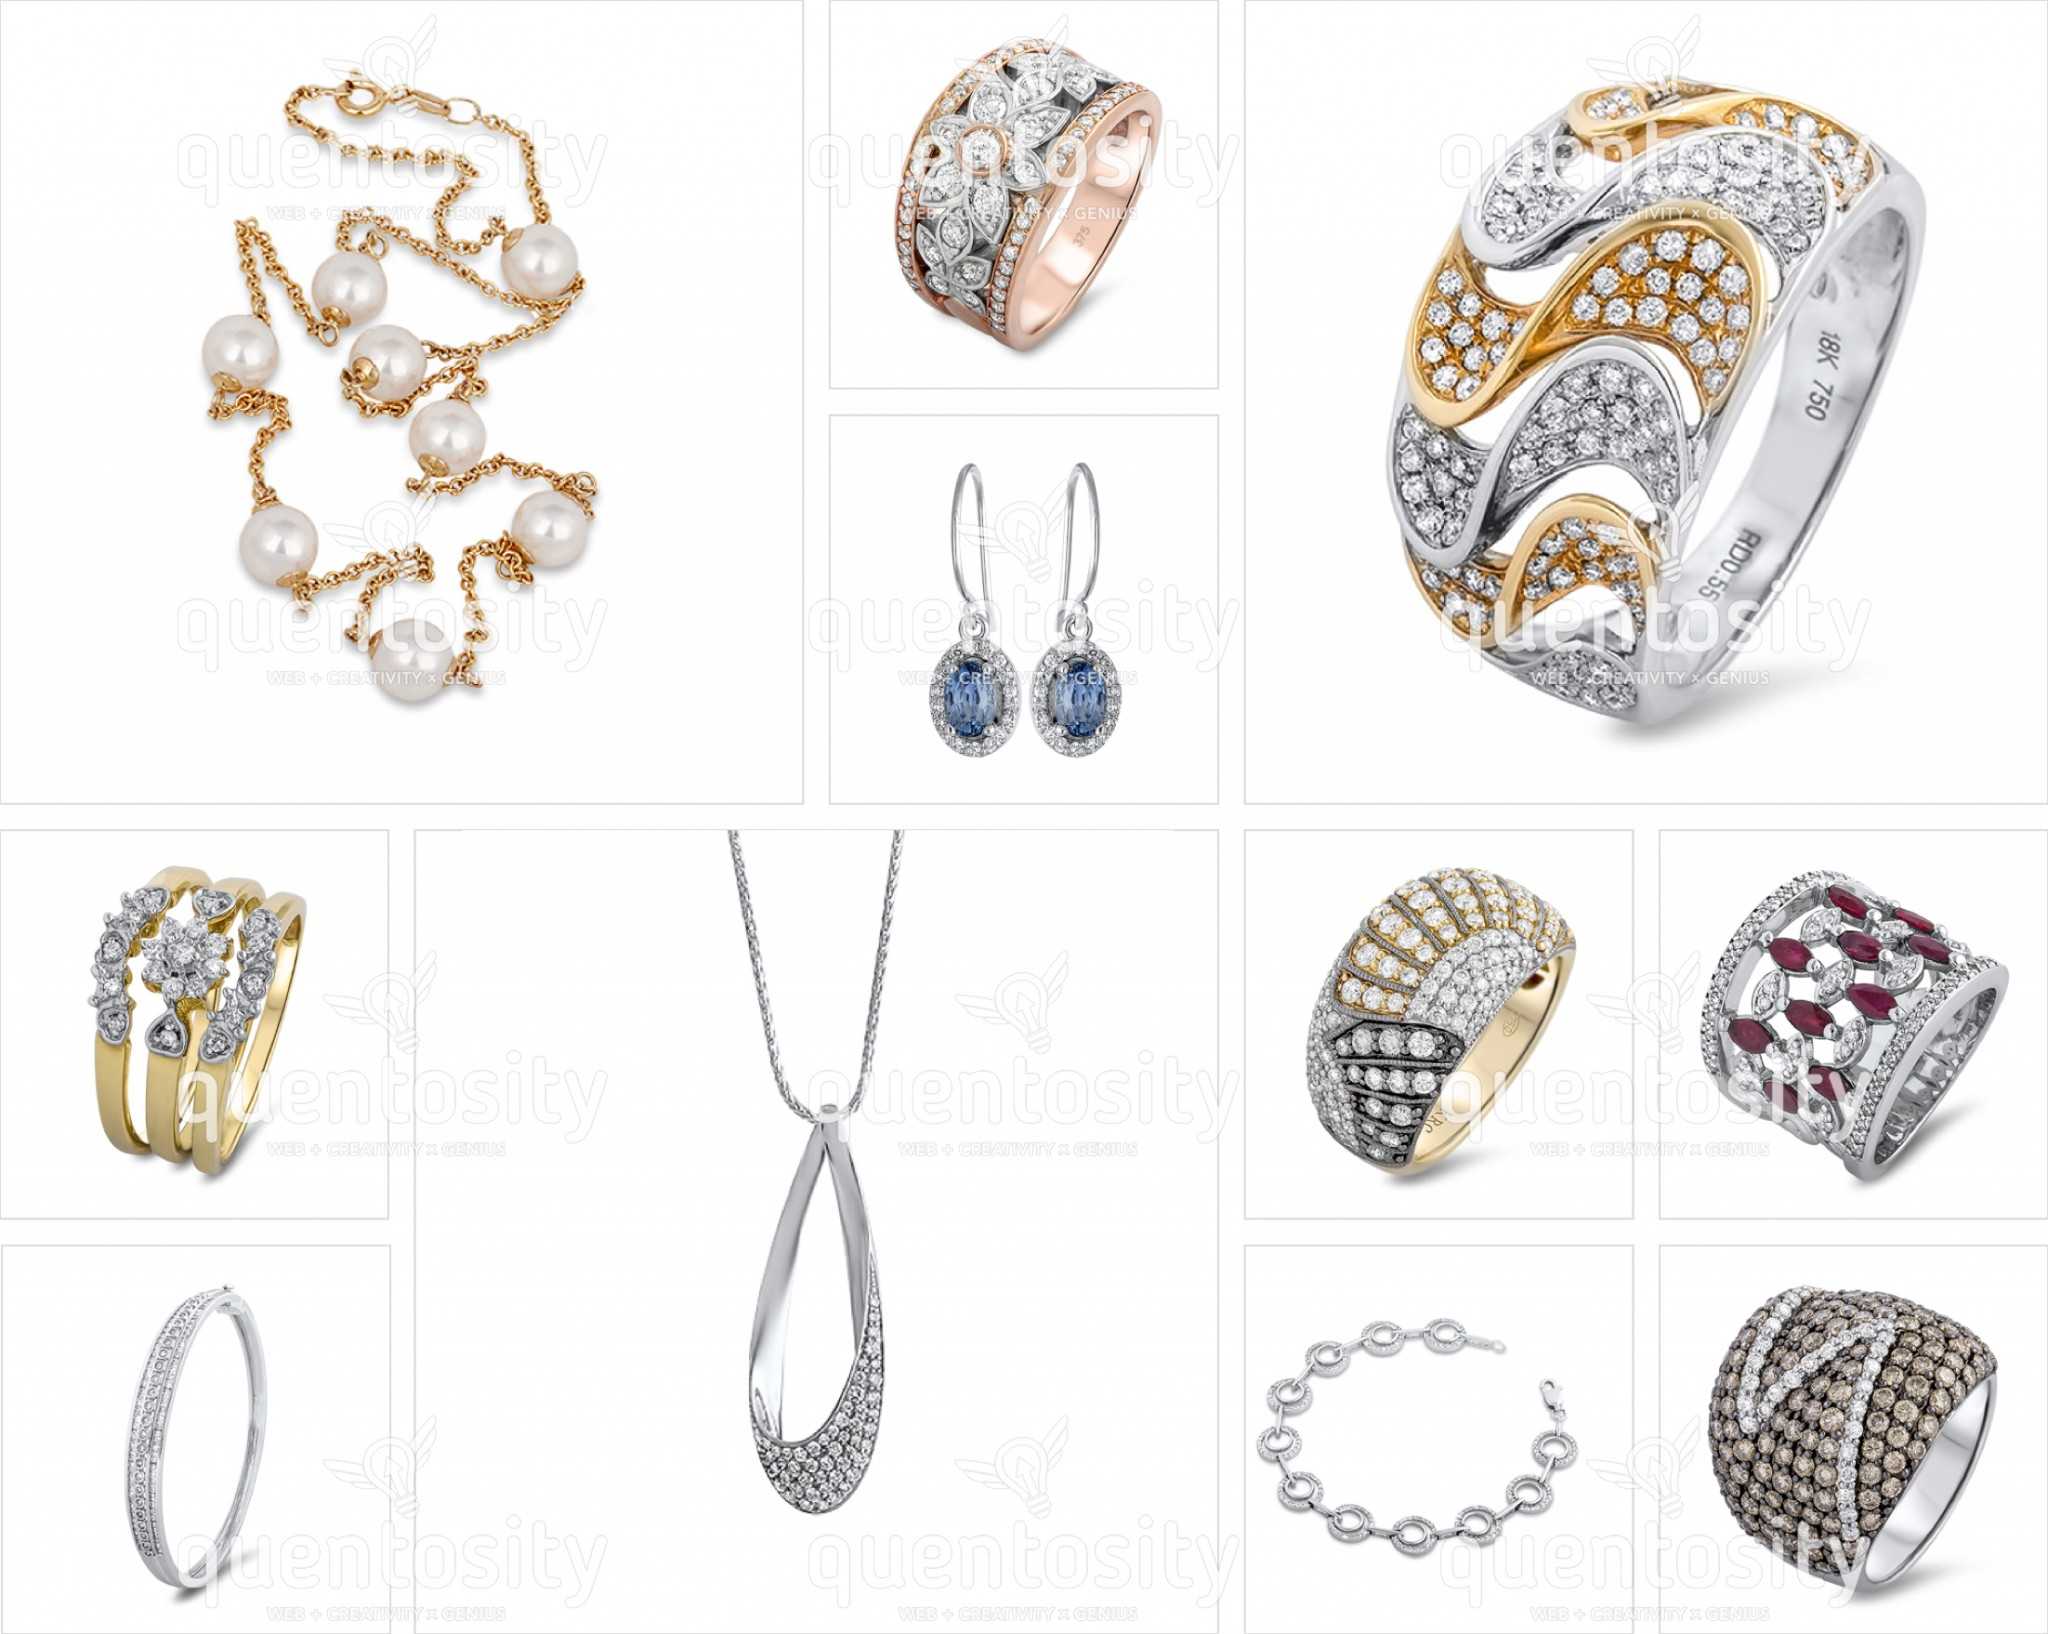 Jewellery Photography - Service Photo Collection